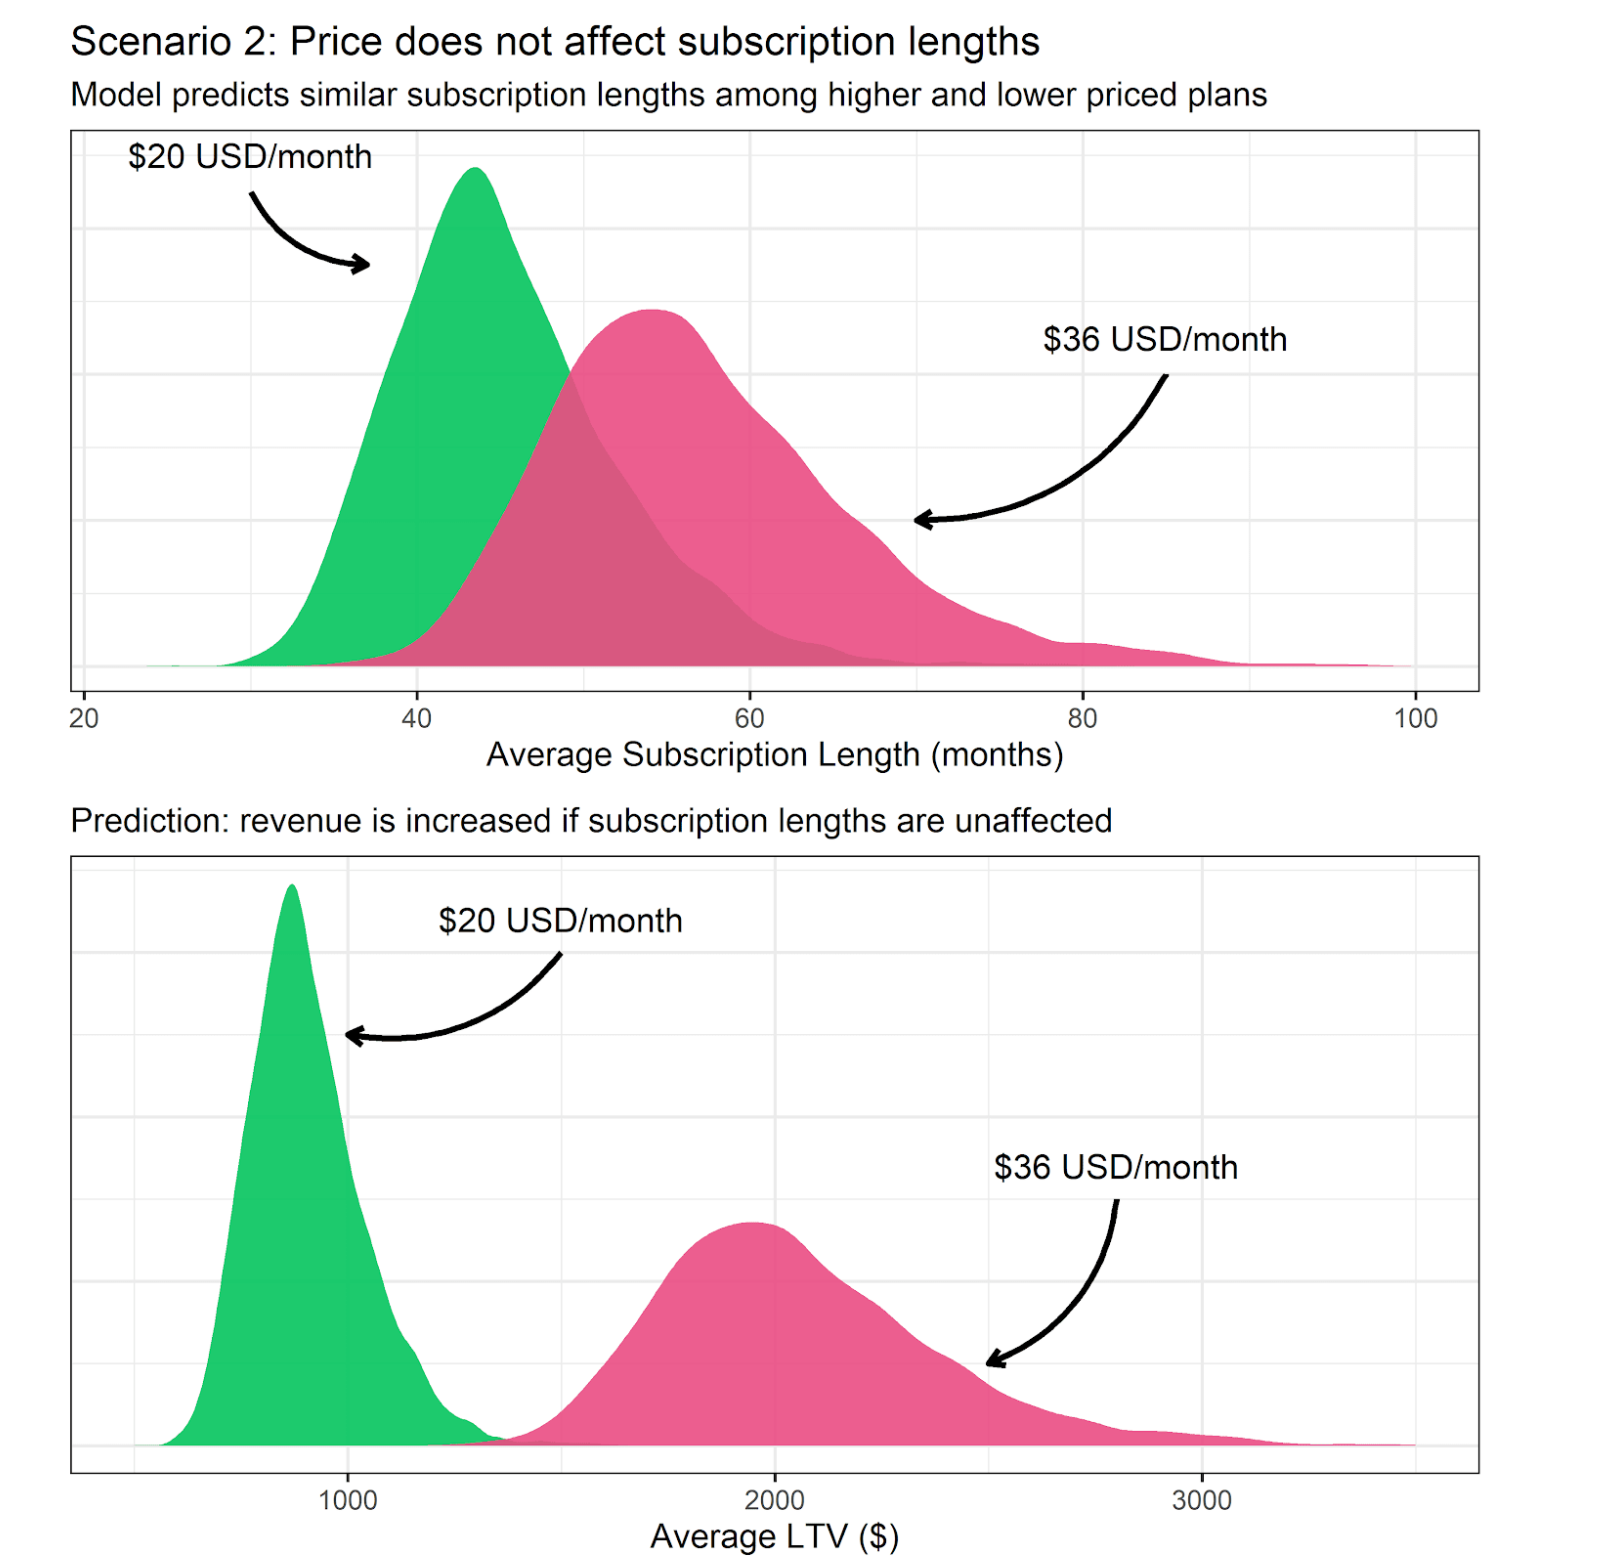 Price does not affect subscription lengths